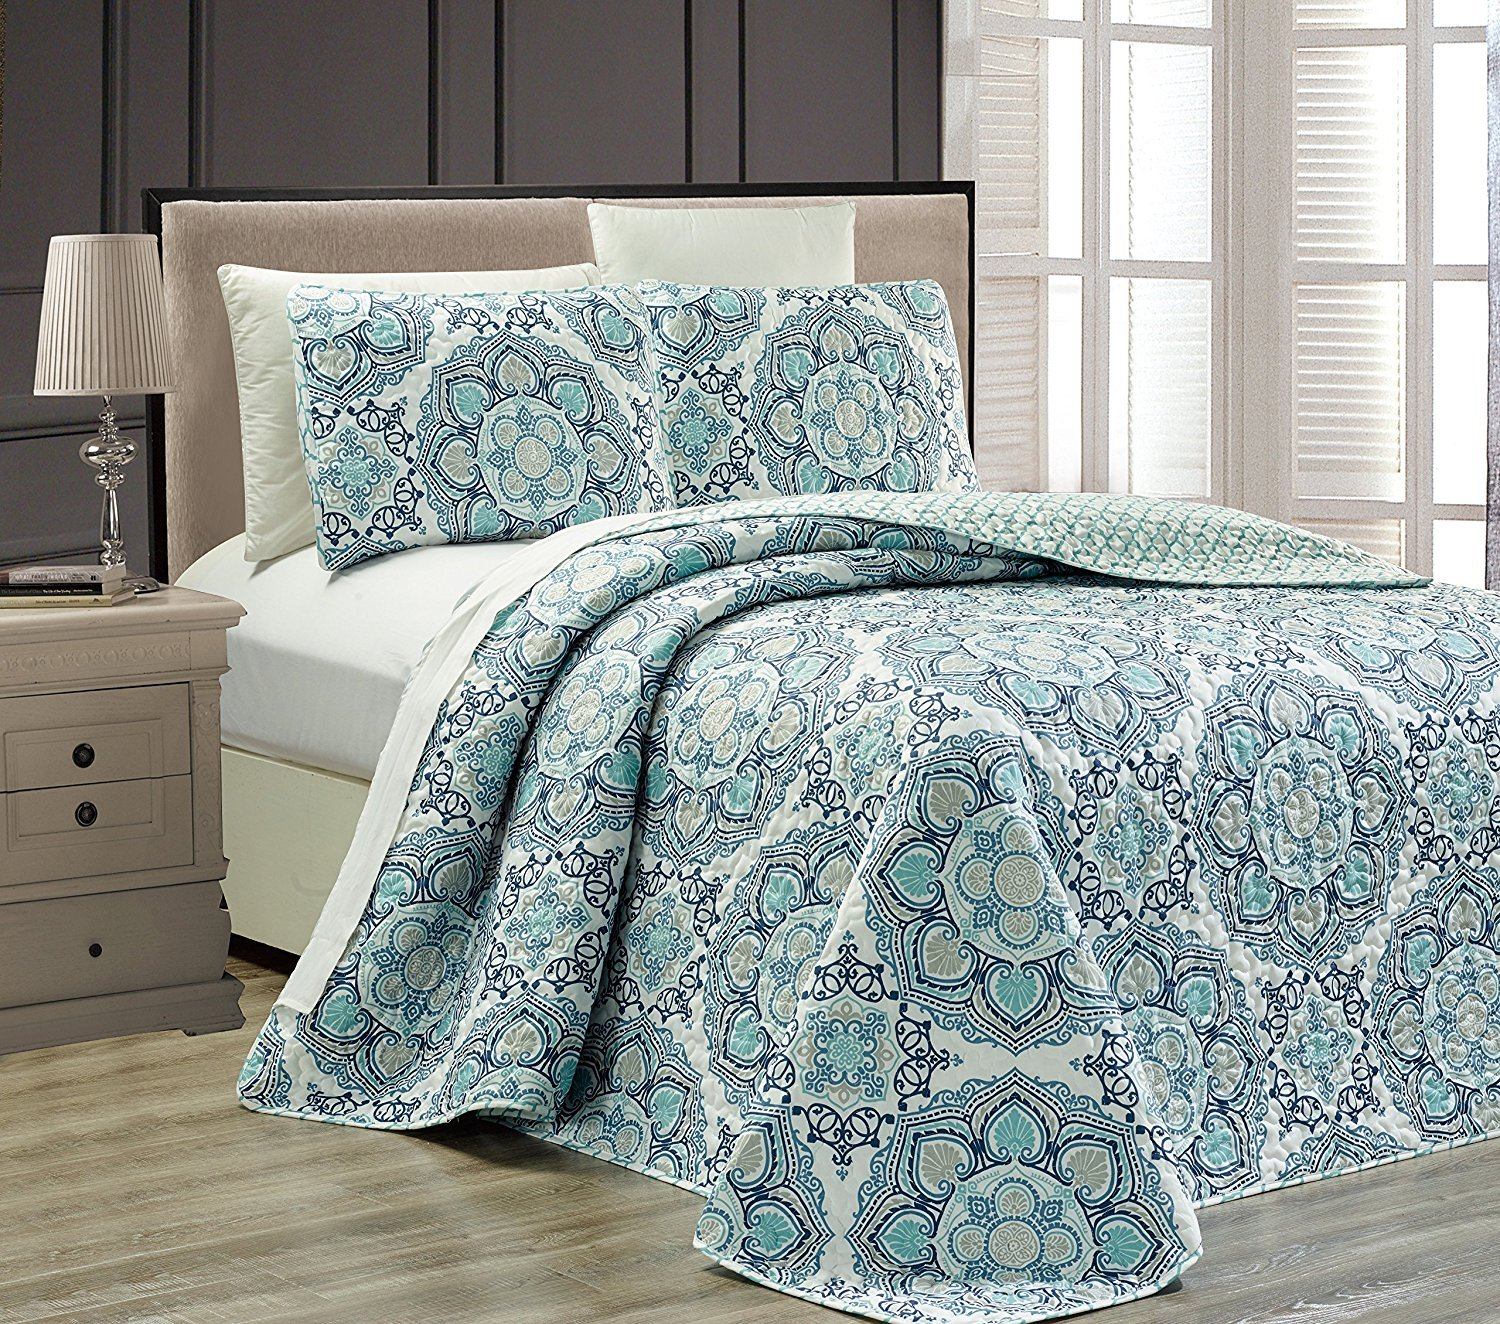 Linen Plus King/California King 3pc Reversible Oversized Bedspread Set Medallion Print Navy Blue White Teal Aqua Taupe by Linen Plus (Image #1)